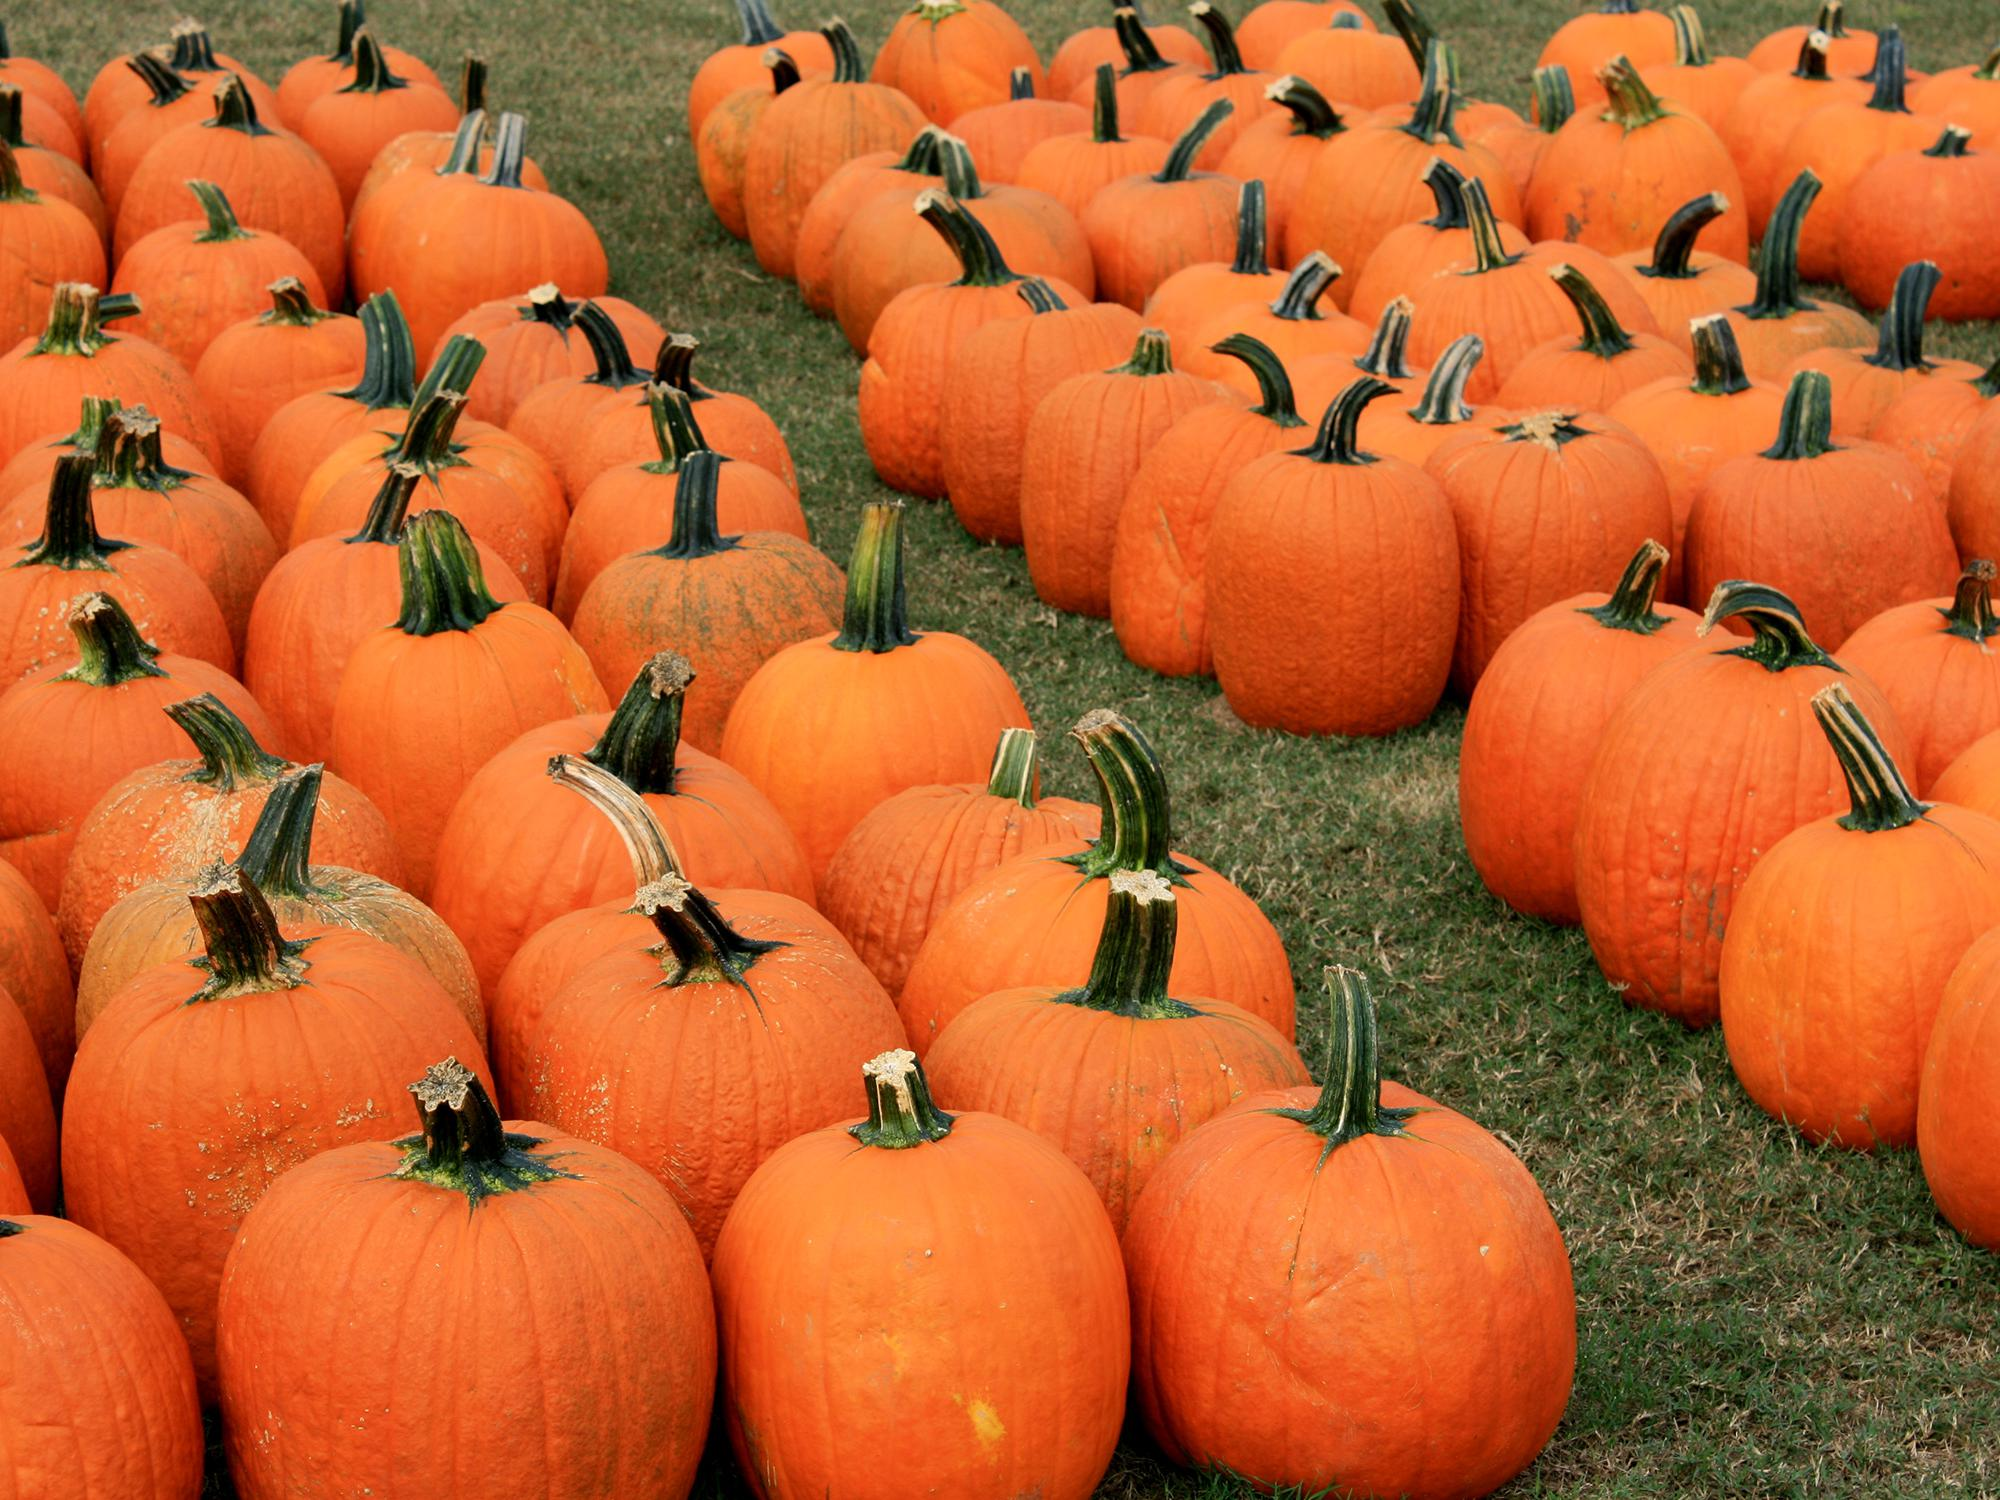 Dozens of bright-orange pumpkins sit in rows on the grass.